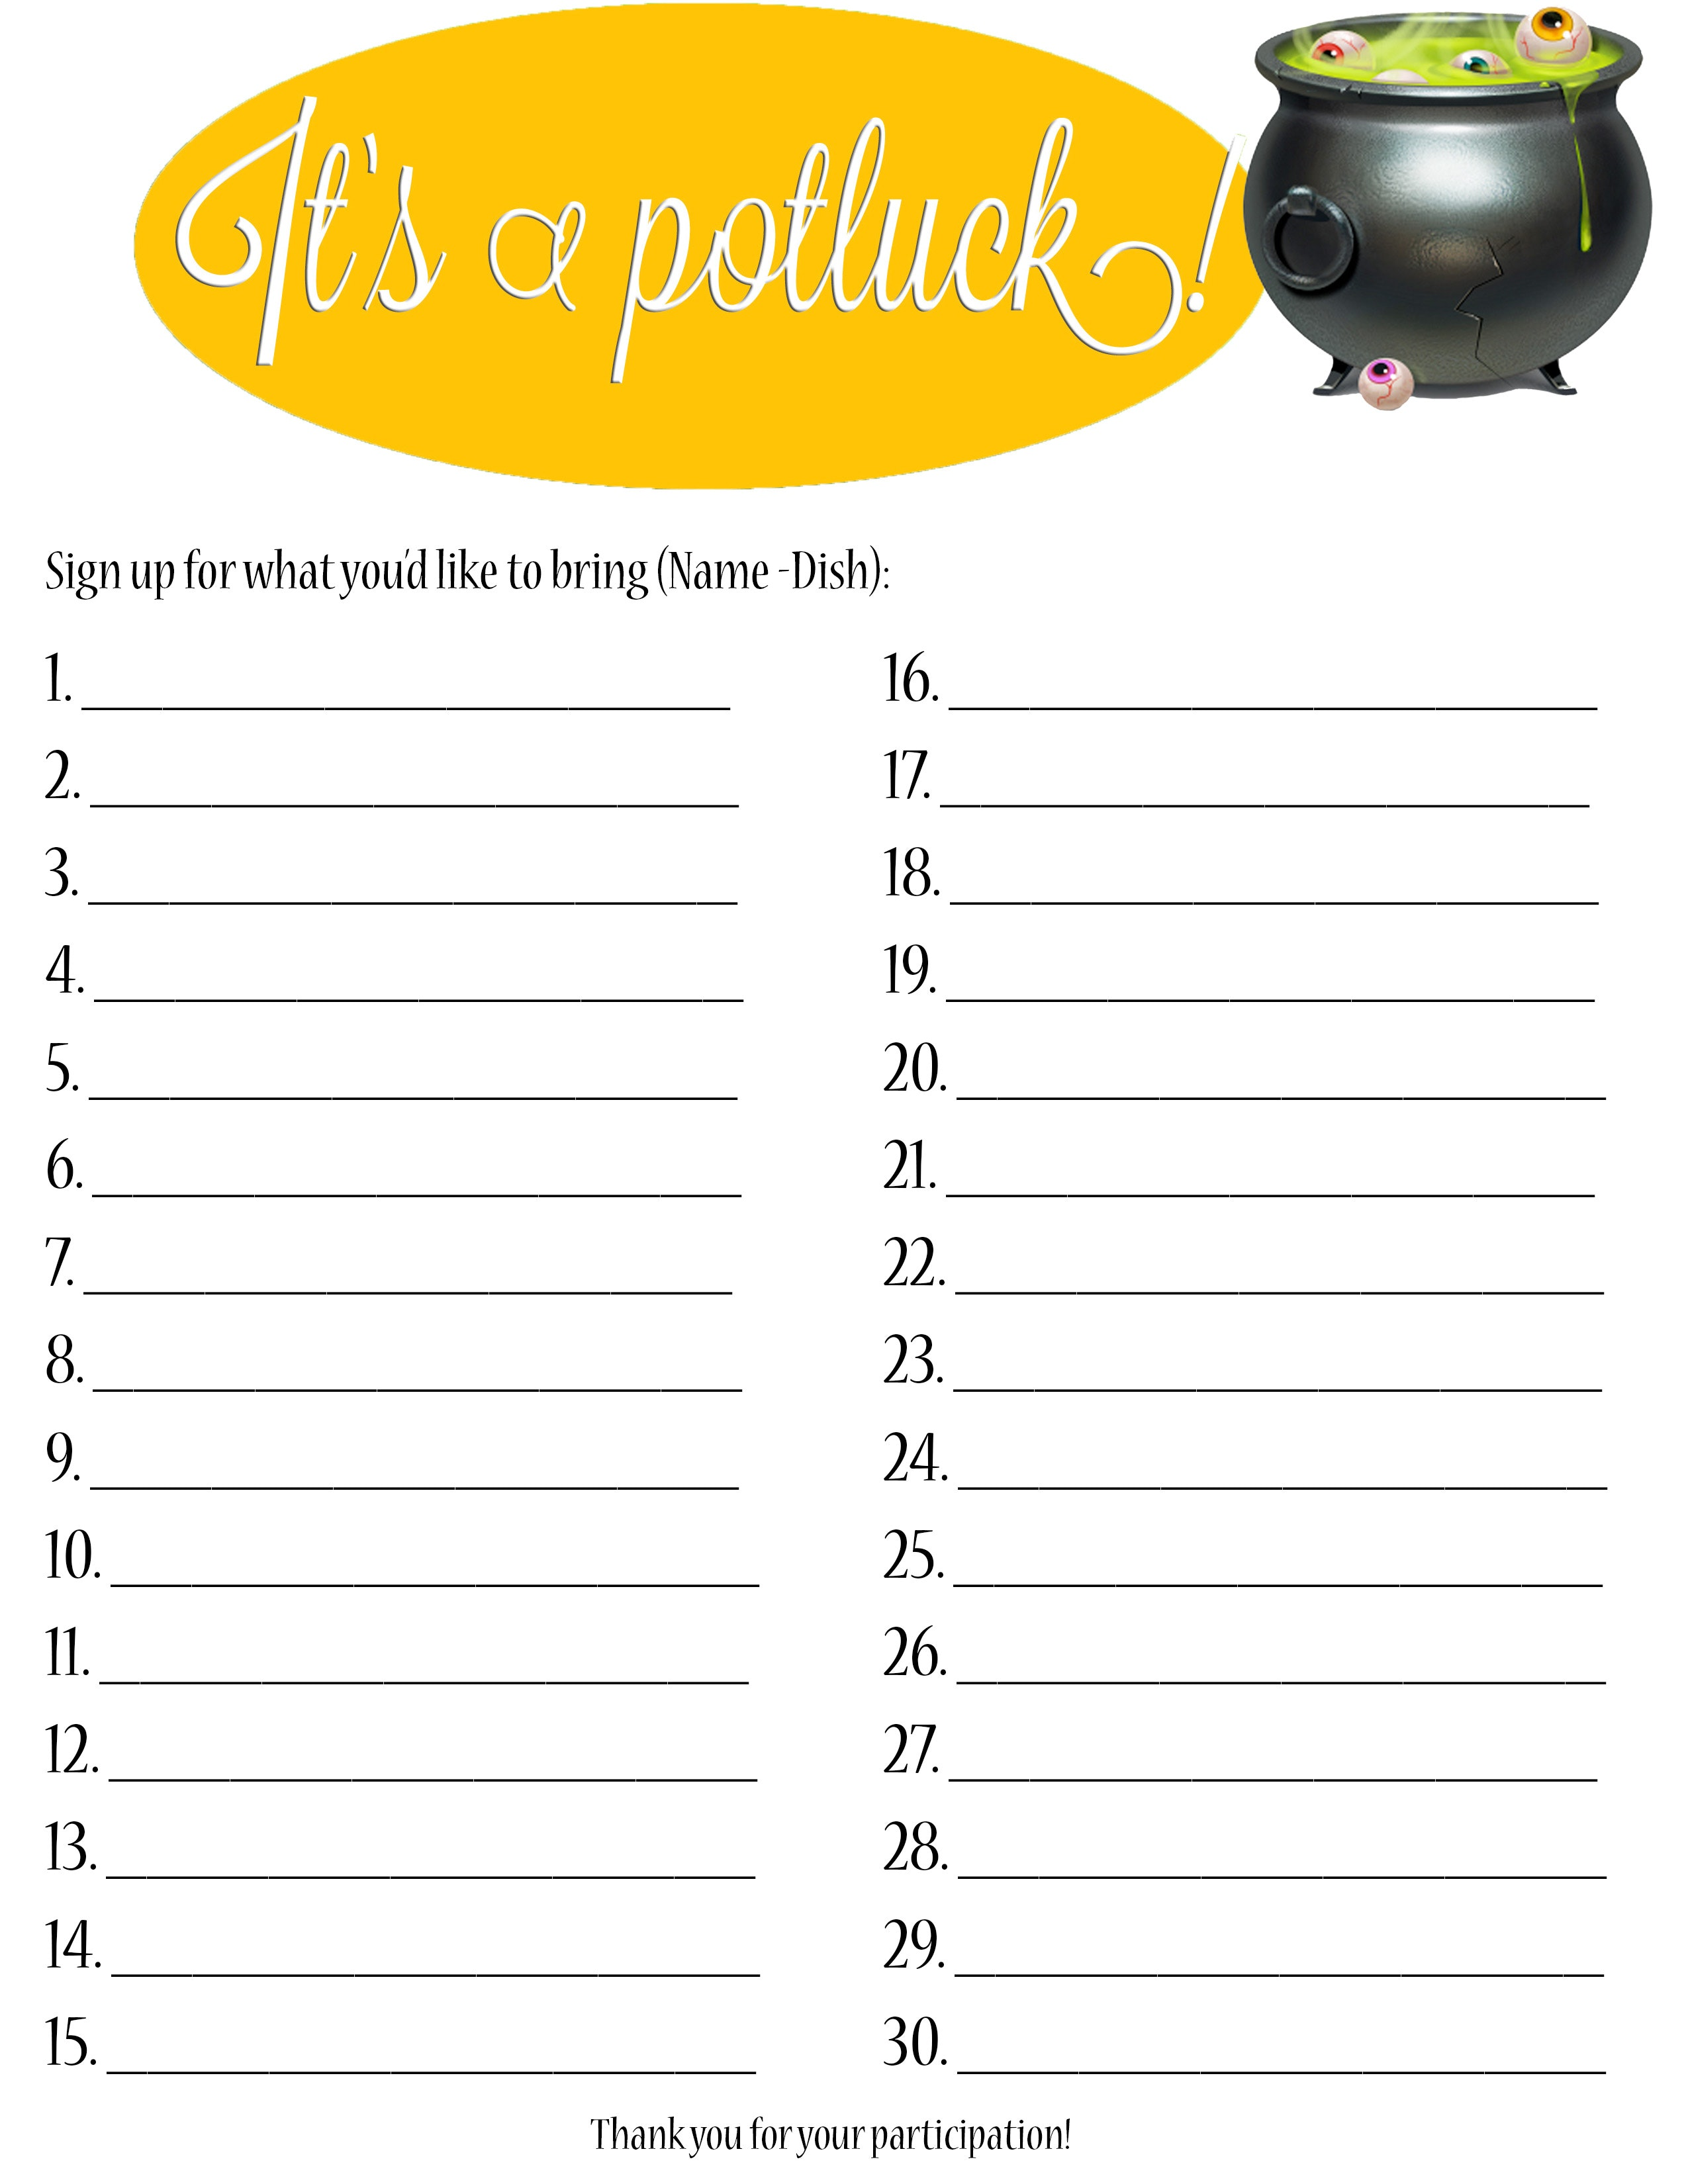 birthday sign up sheet template ; potluck-sign-up-sheet-template-final-5-thanksgiving-signup